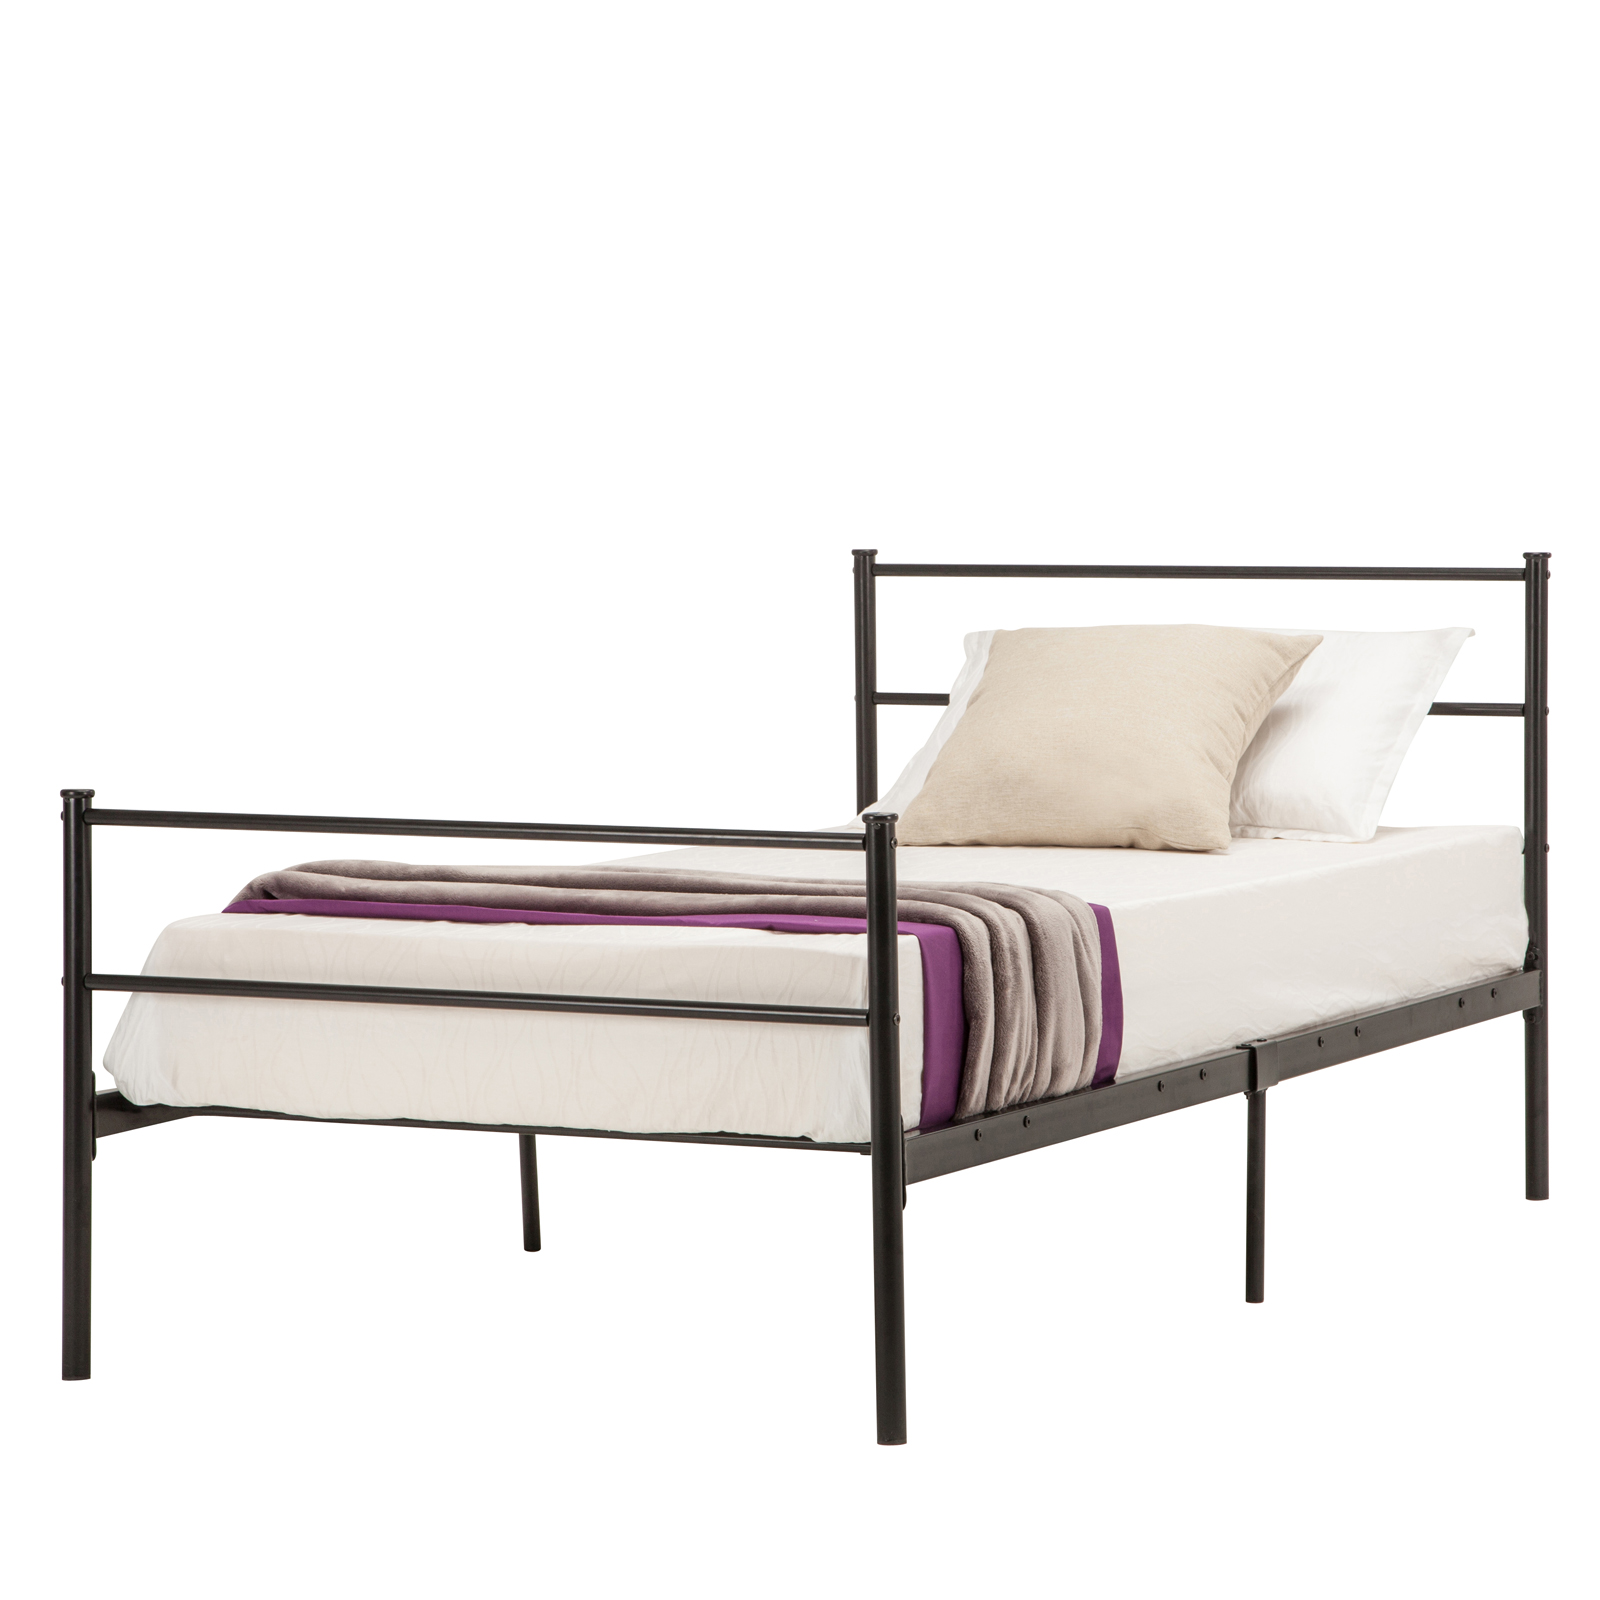 twin full queen size metal bed frame platform mattress foundation headboard ebay. Black Bedroom Furniture Sets. Home Design Ideas